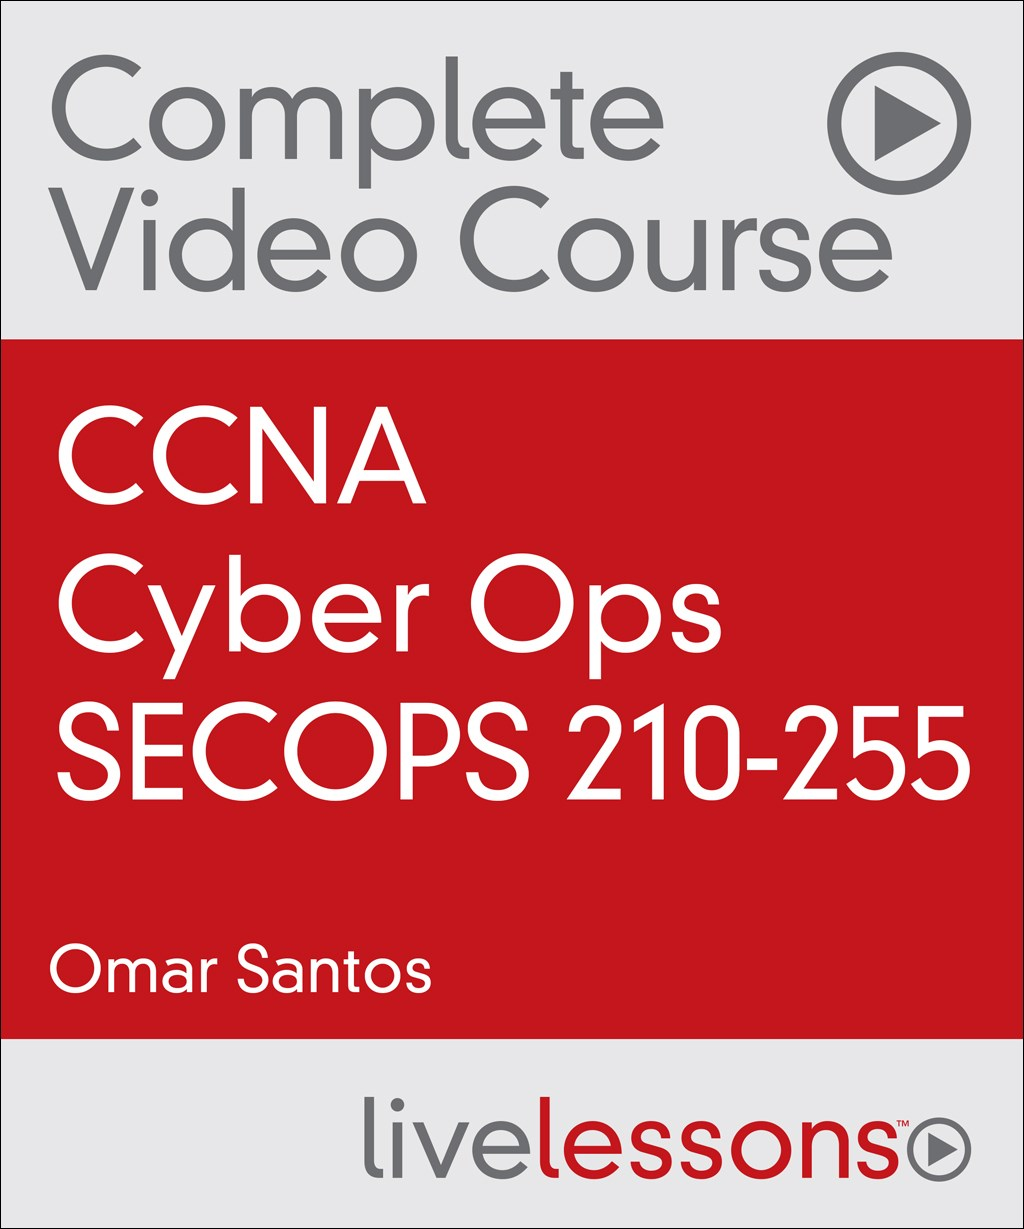 CCNA Cyber Ops SECOPS 210-255 Complete Video Course and Practice Test